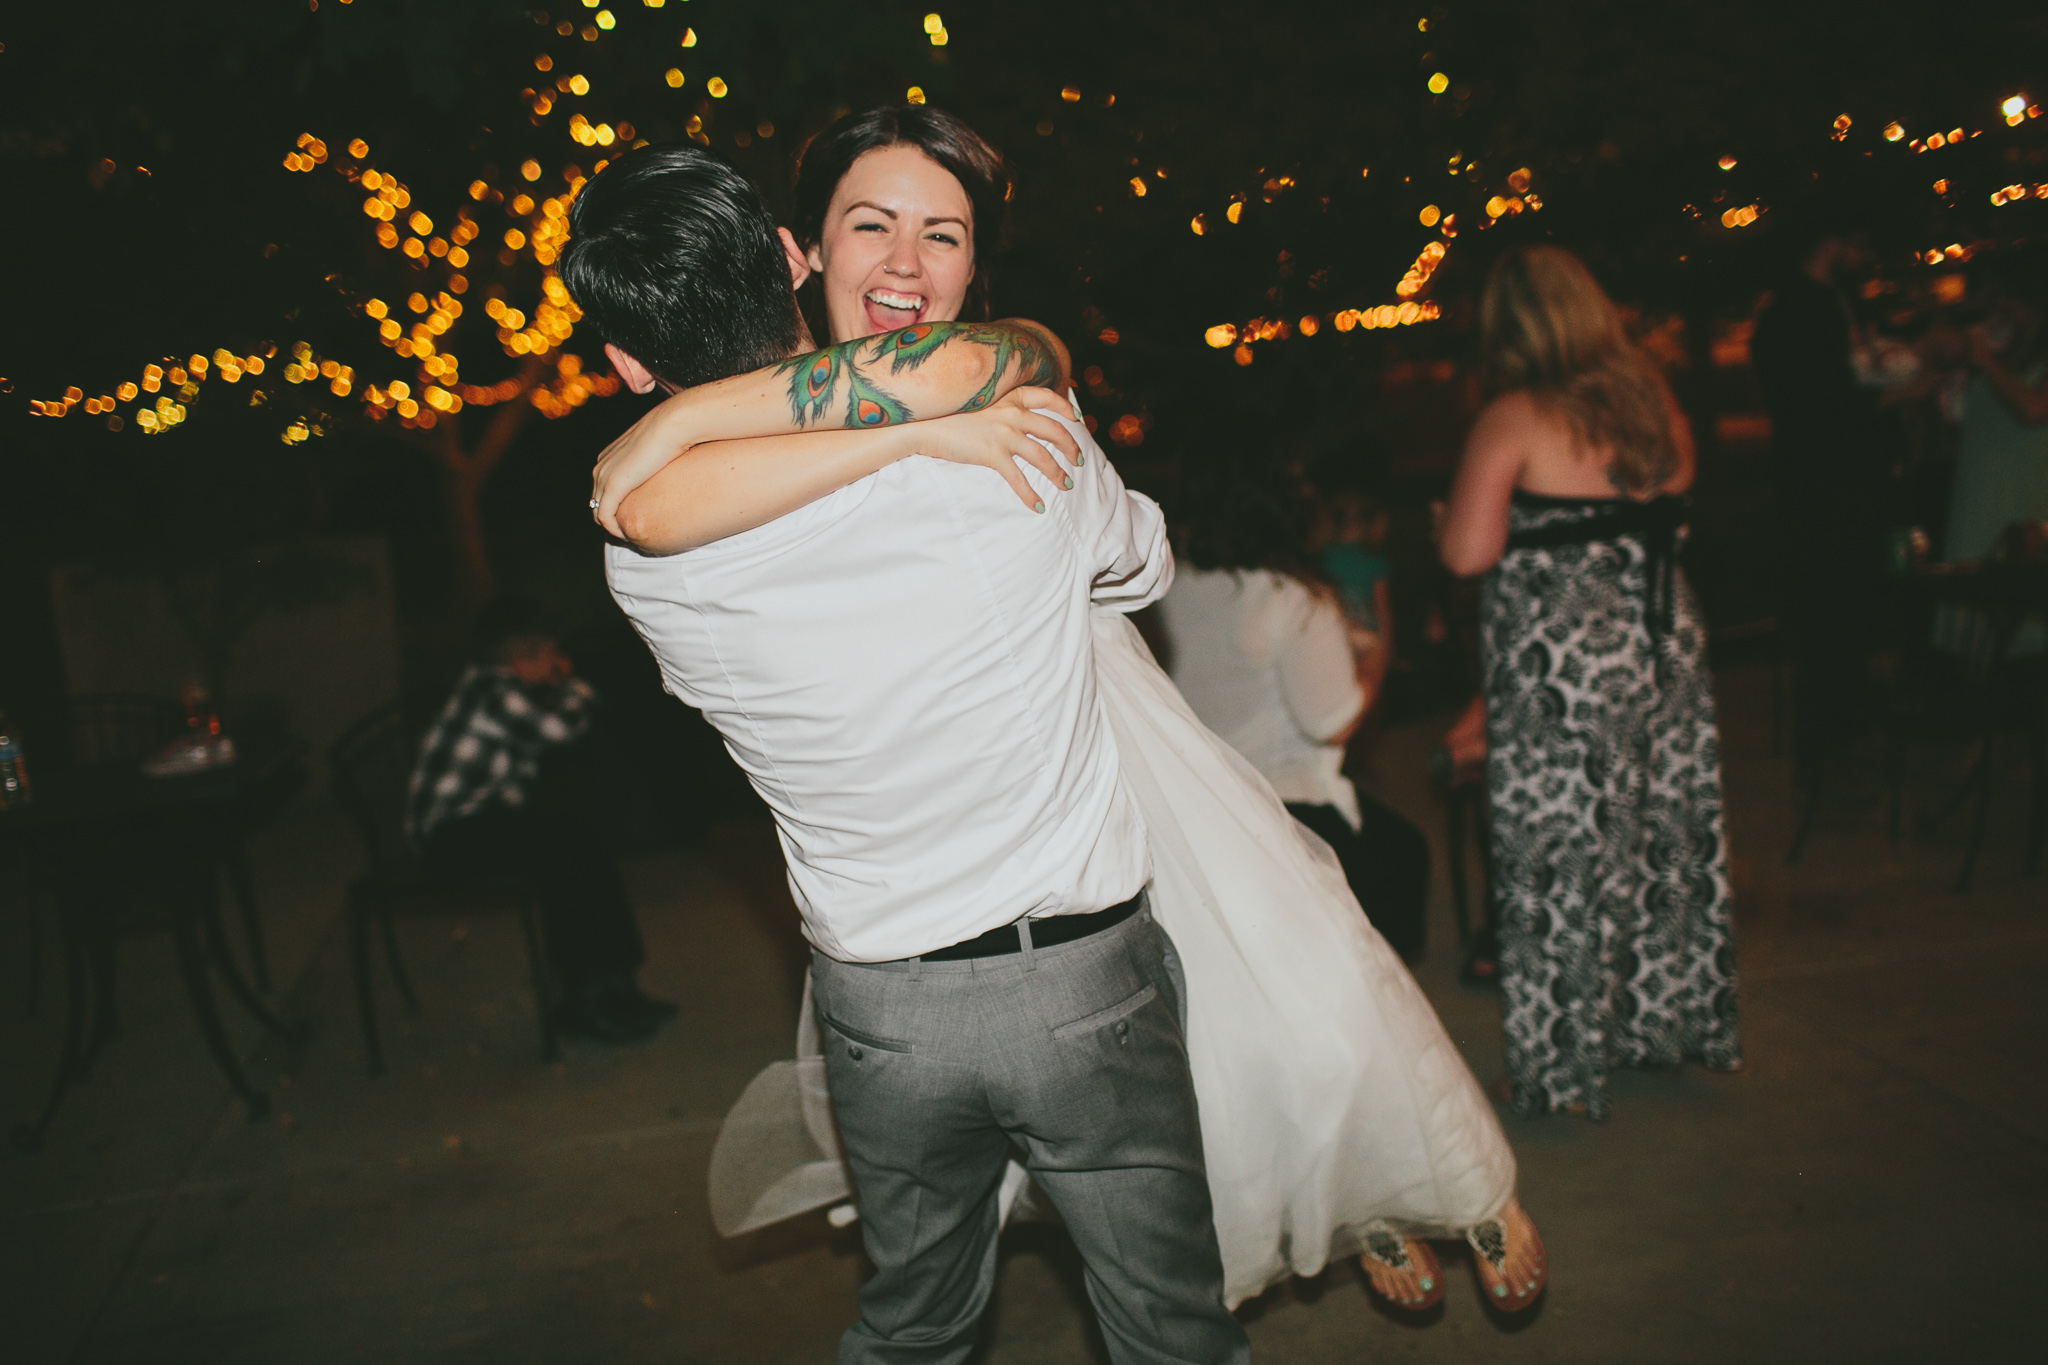 Amy+Nick-WEDDING_KellyBoitanoPhotography20151219_0173